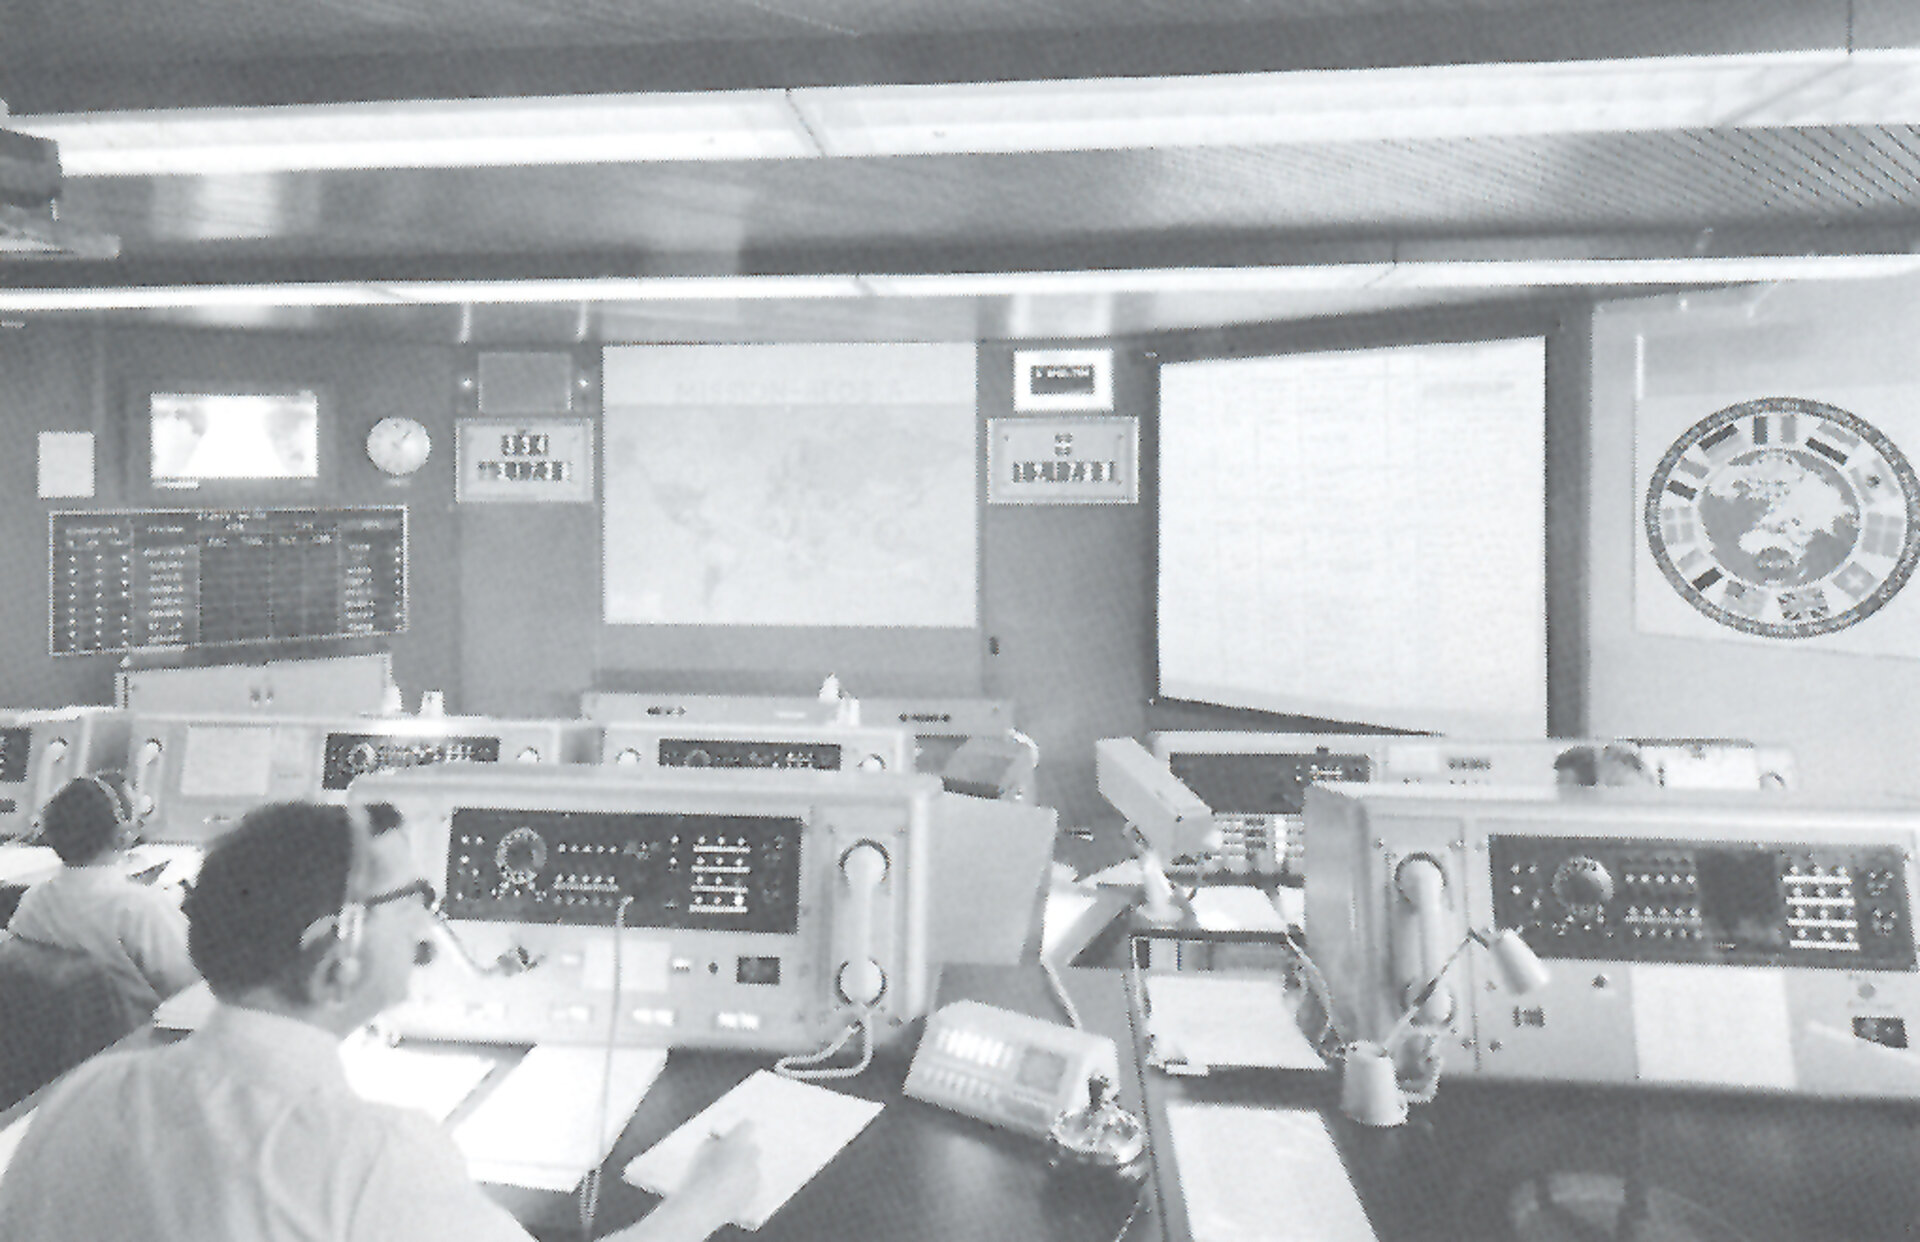 ESOC Main Control Room in the 1960s